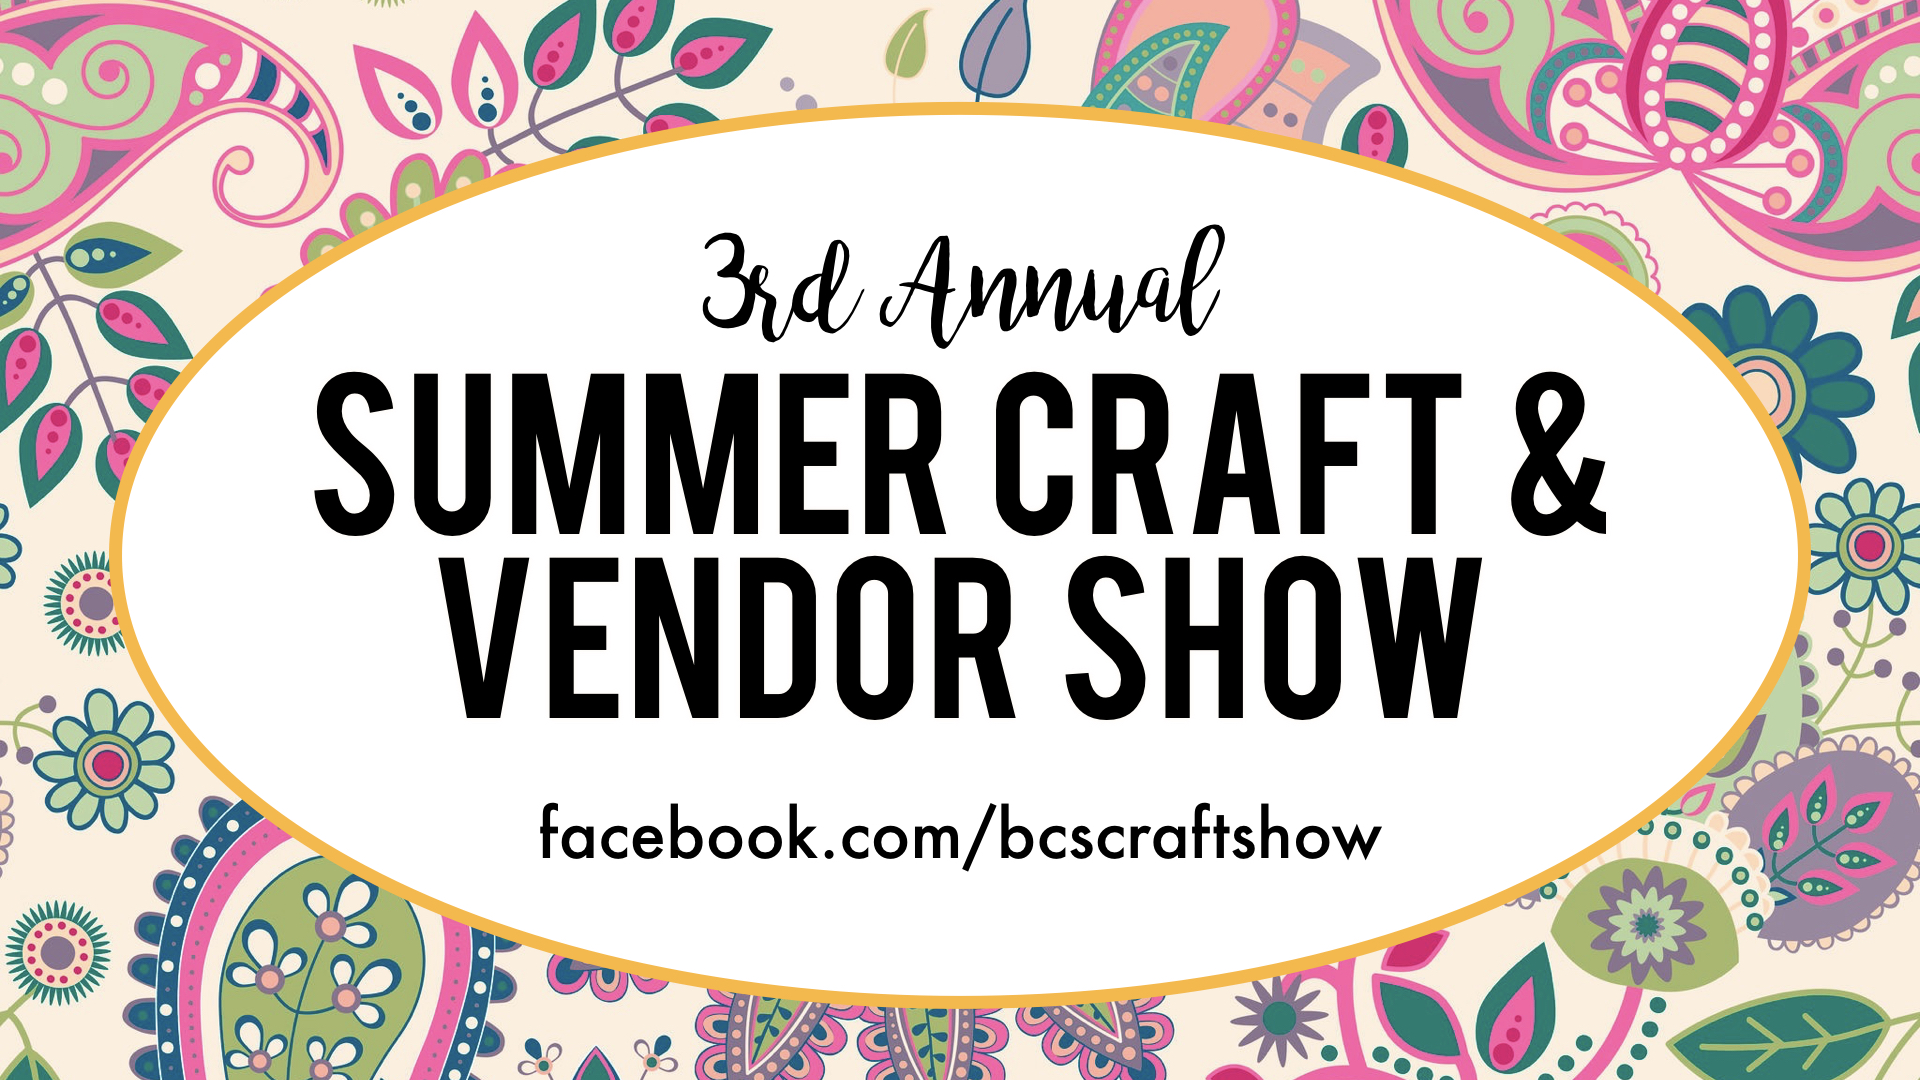 Summer Craft & Vendor Show